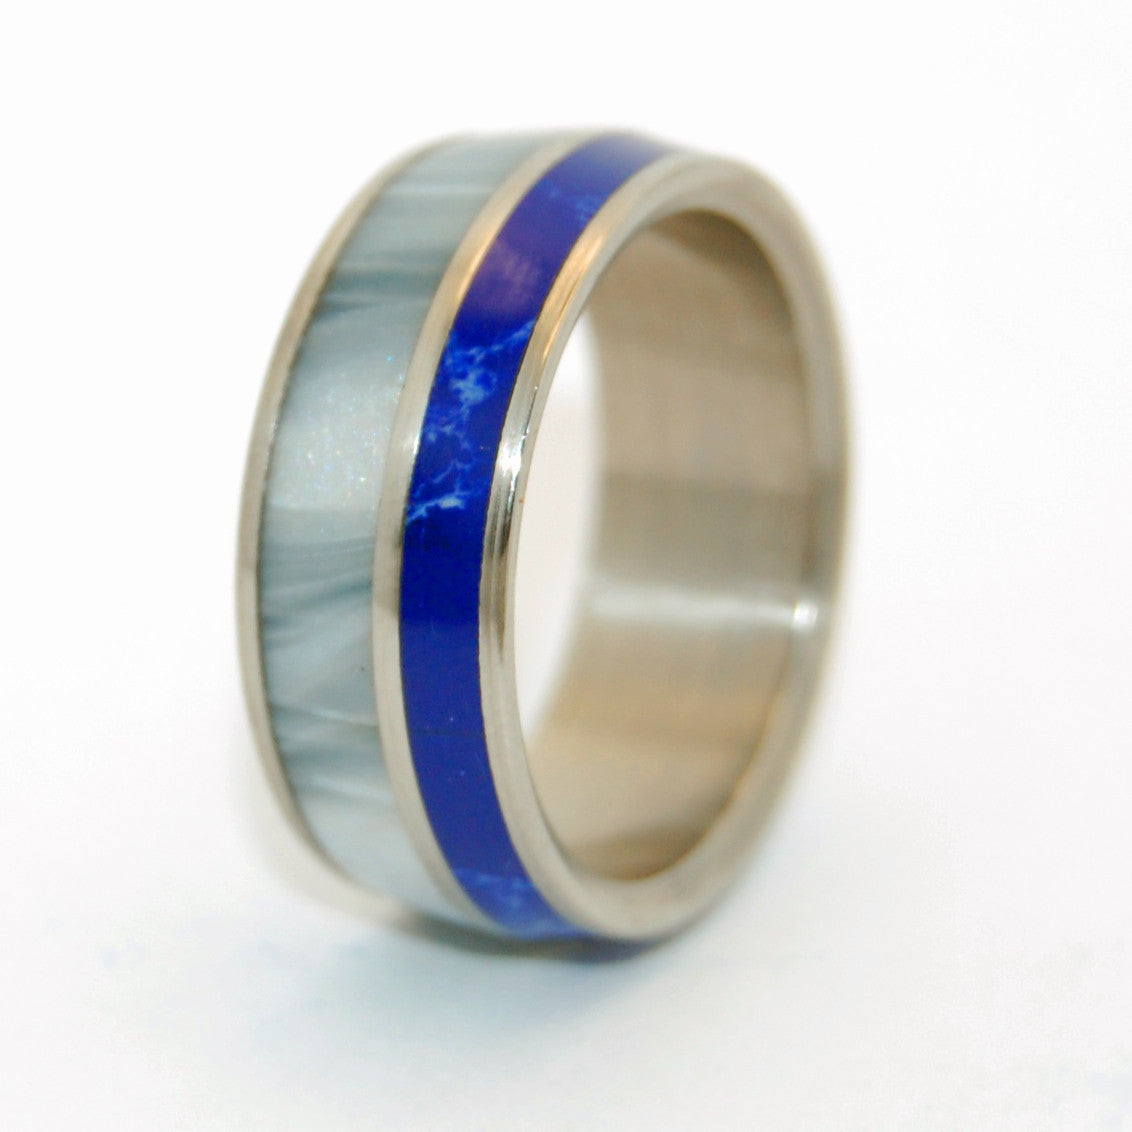 We'll Always Be | Stone Titanium Wedding Ring - Minter and Richter Designs